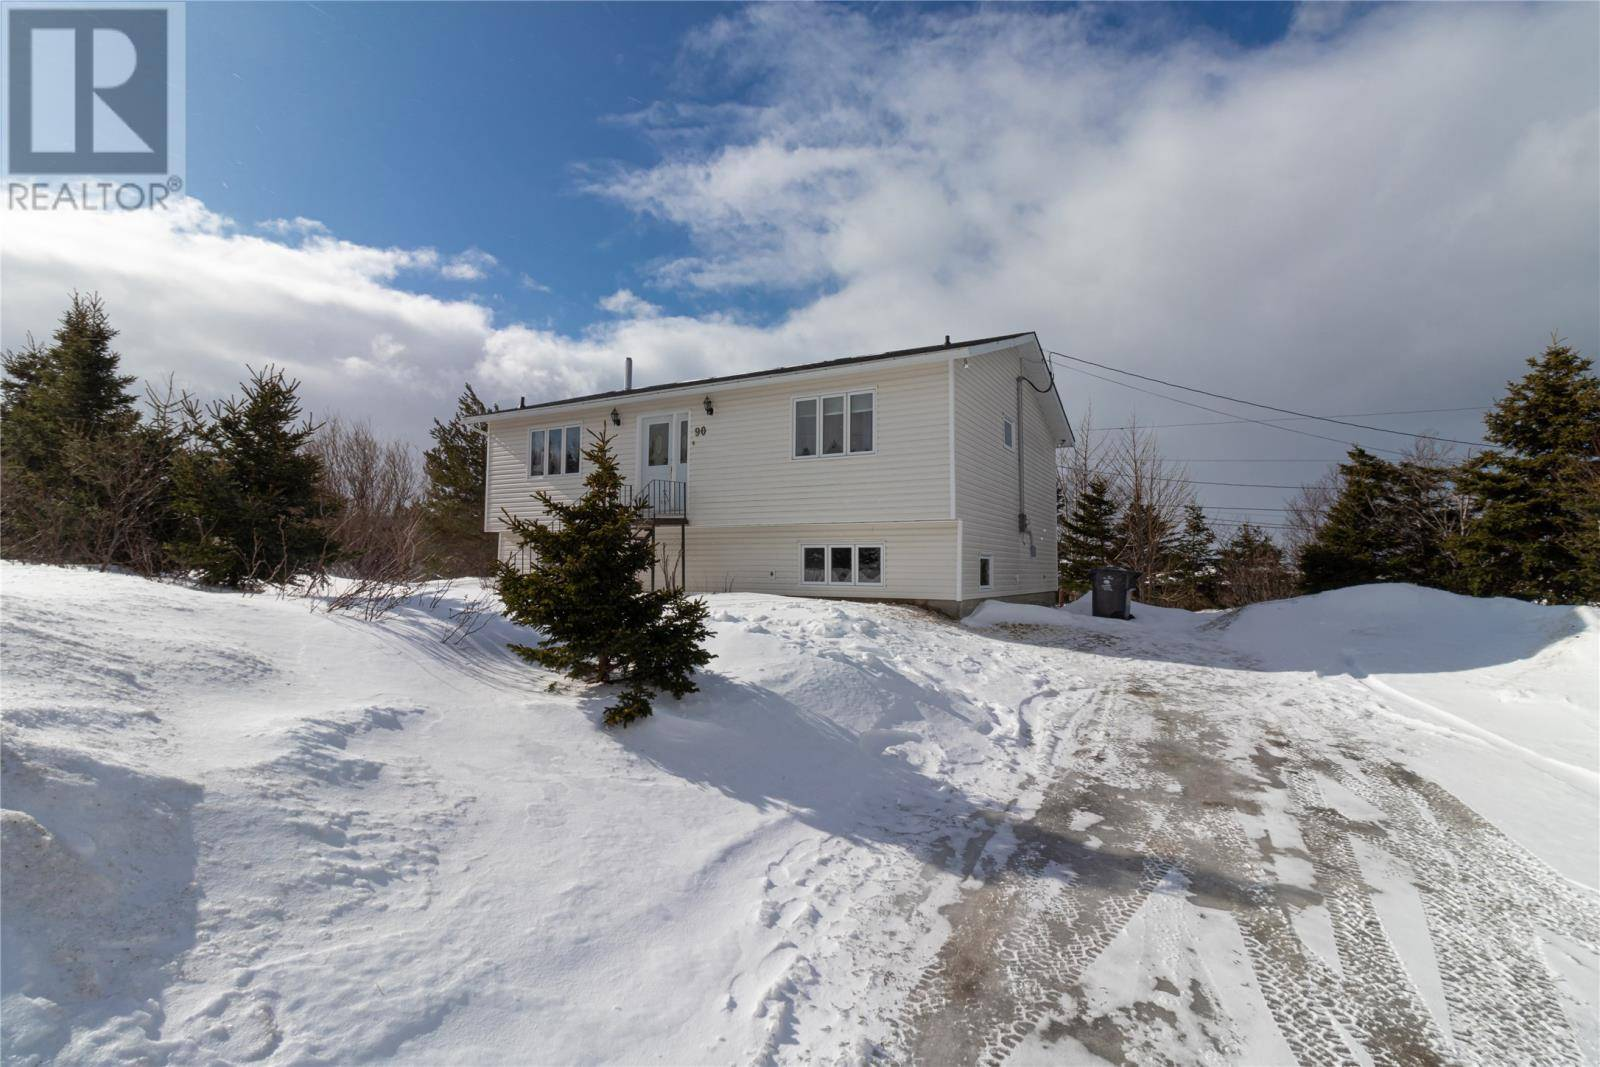 House for sale at 90 Sweetenwater Ave Conception Bay South Newfoundland - MLS: 1211615